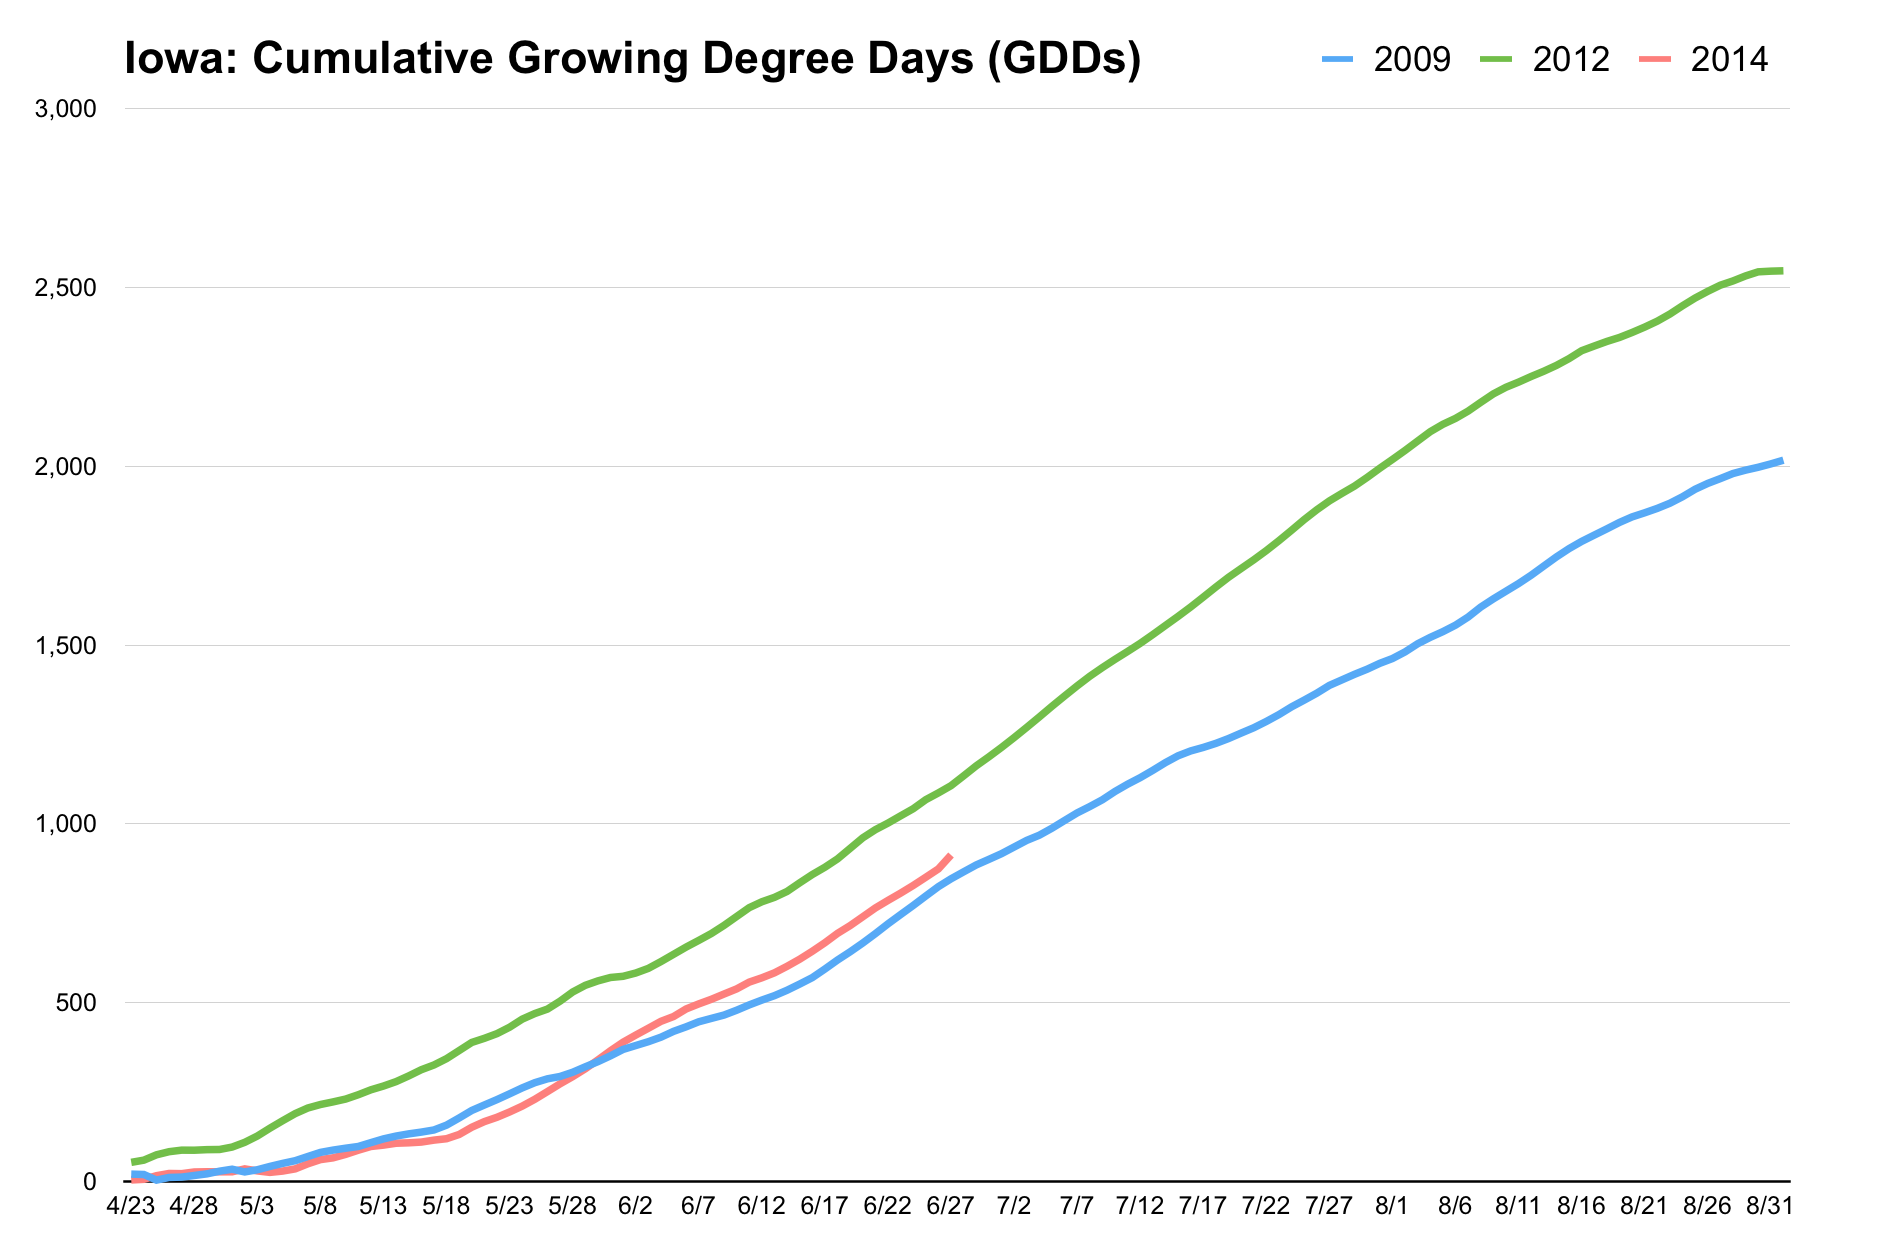 Iowa: Cumulative Growing Degree Days